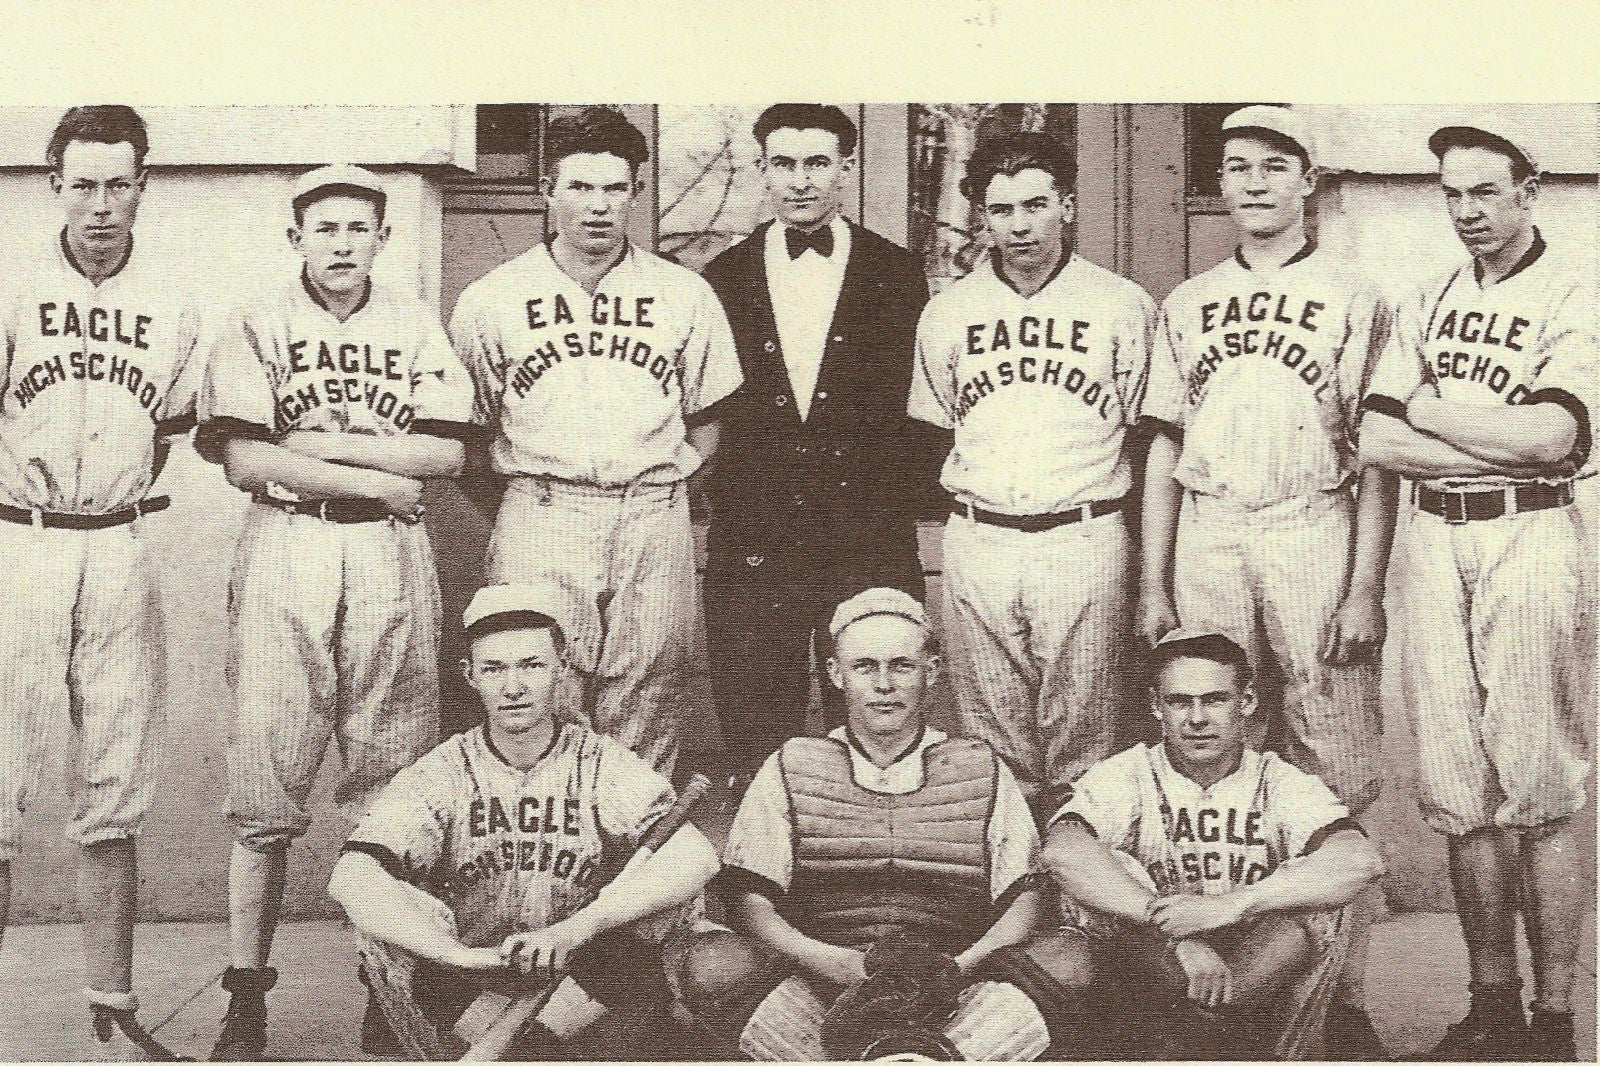 1931 Eagle High School boy's baseball team